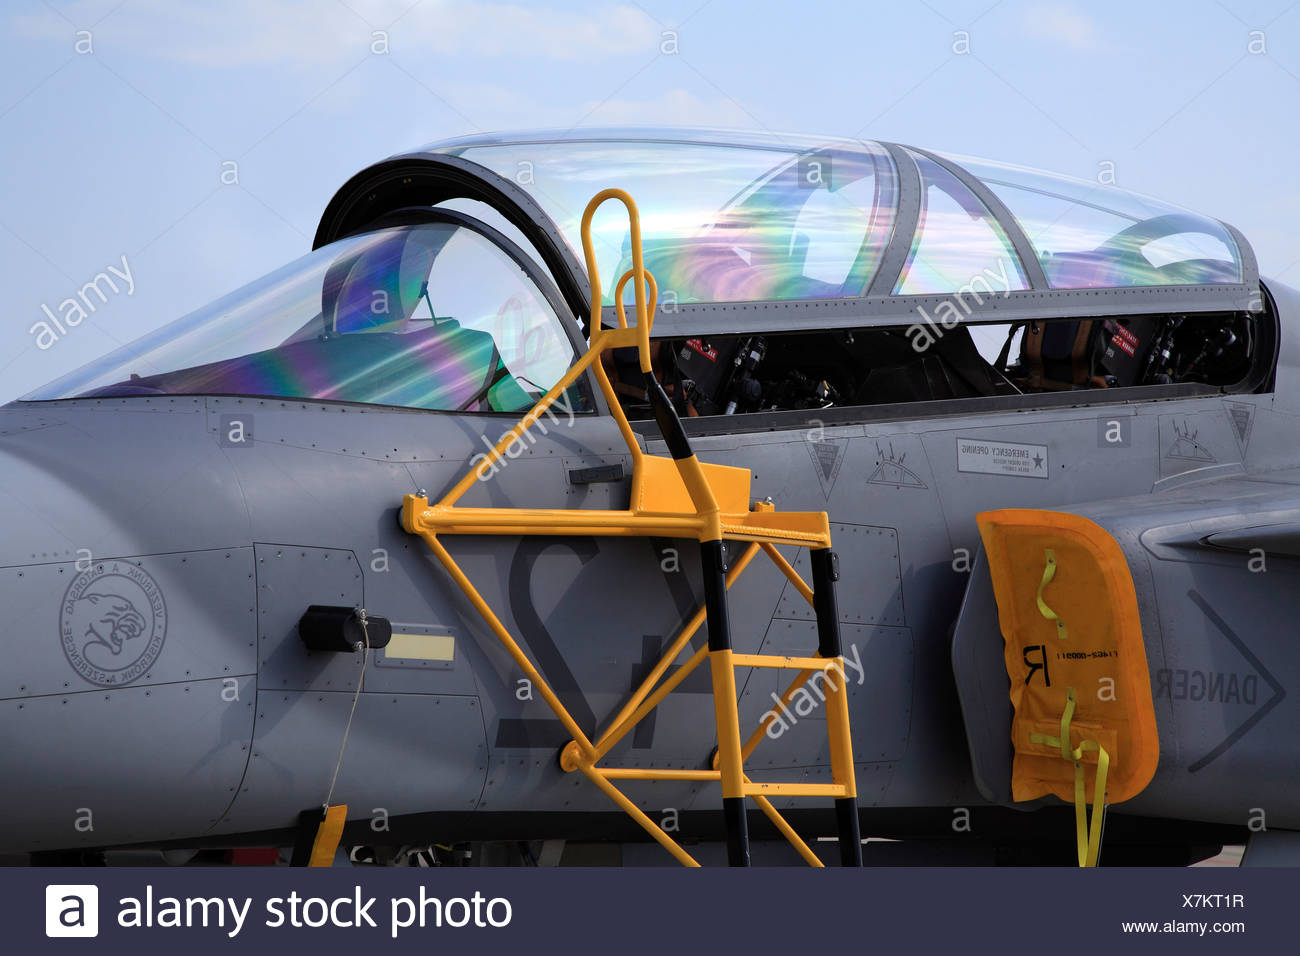 Cockpit, tactical aircraft - Stock Image